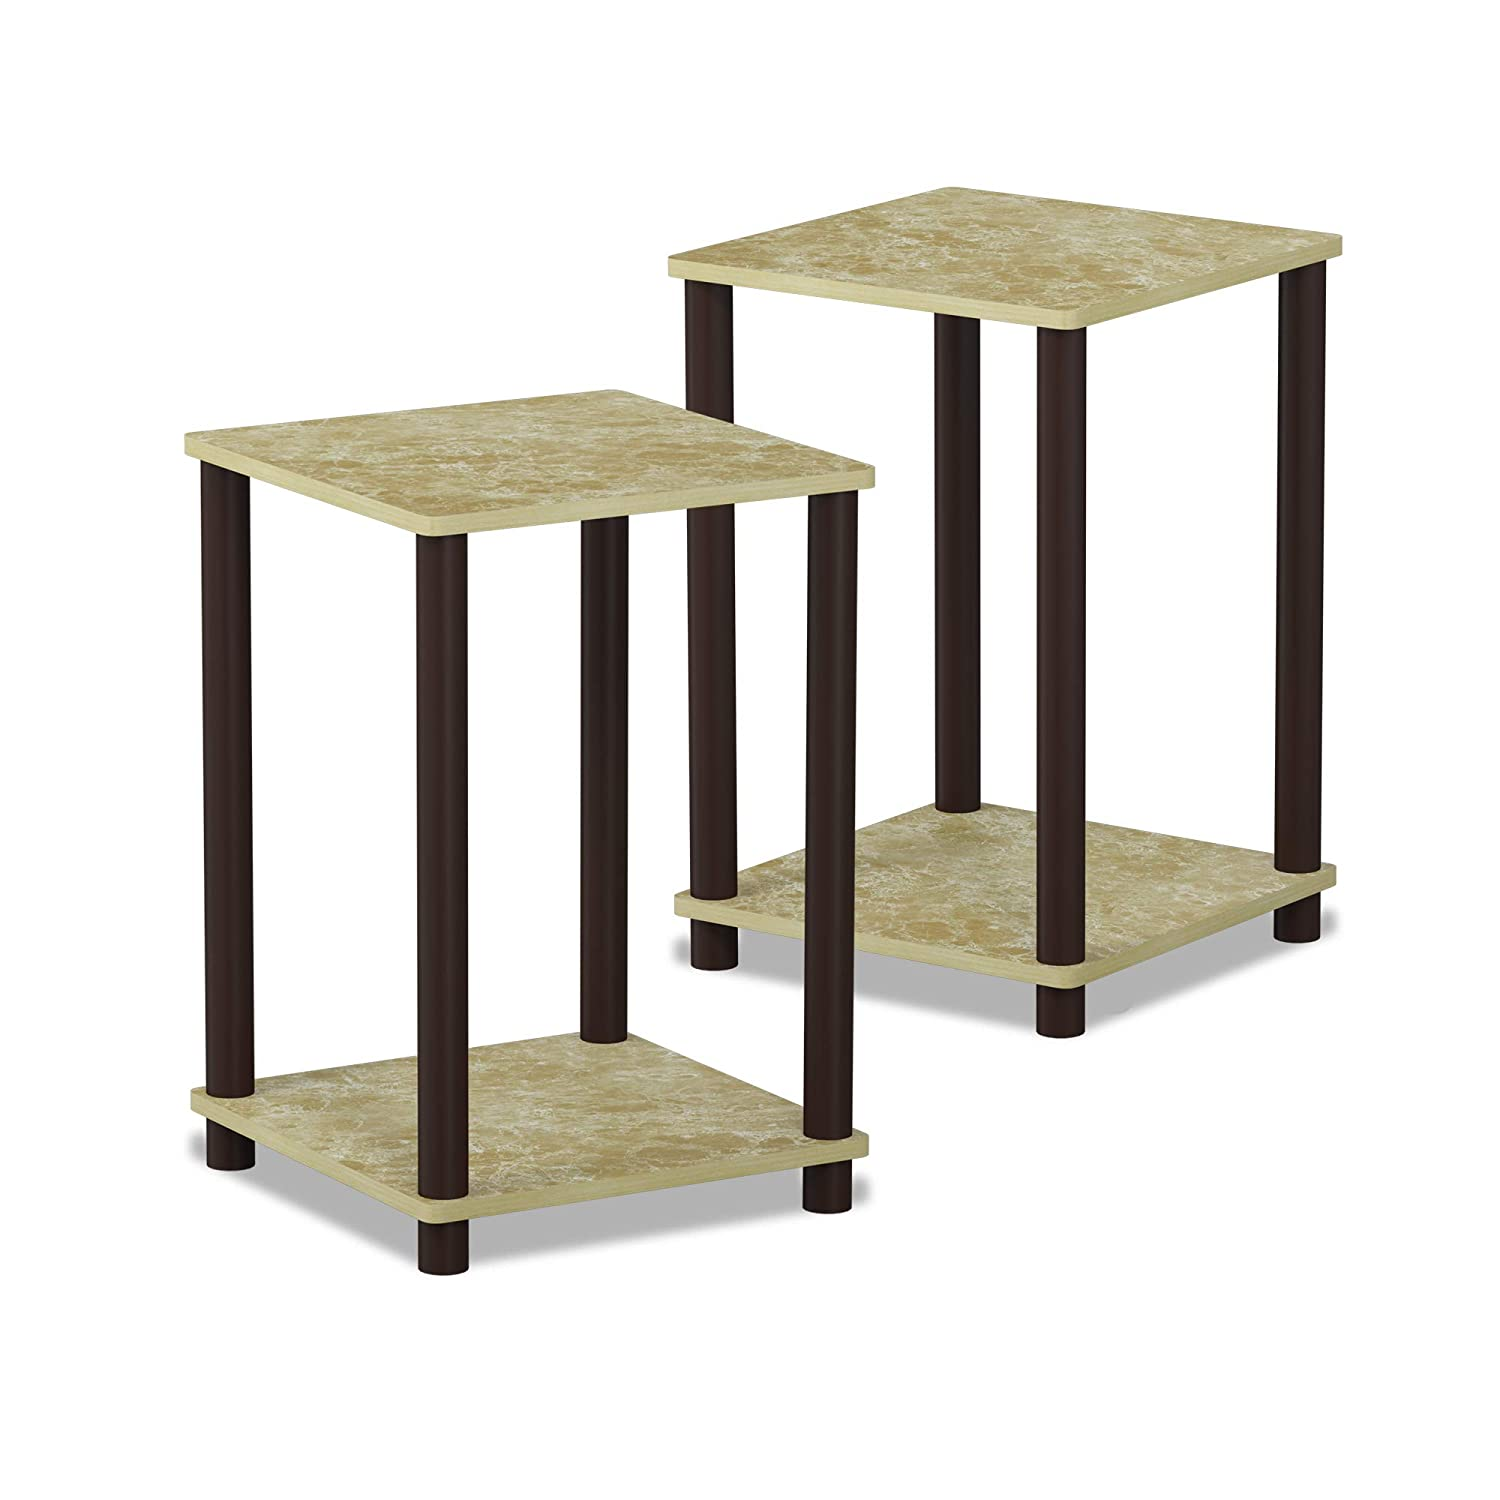 Furinno 99800GYW/BK End Table 1-Pack French Oak Grey/Black